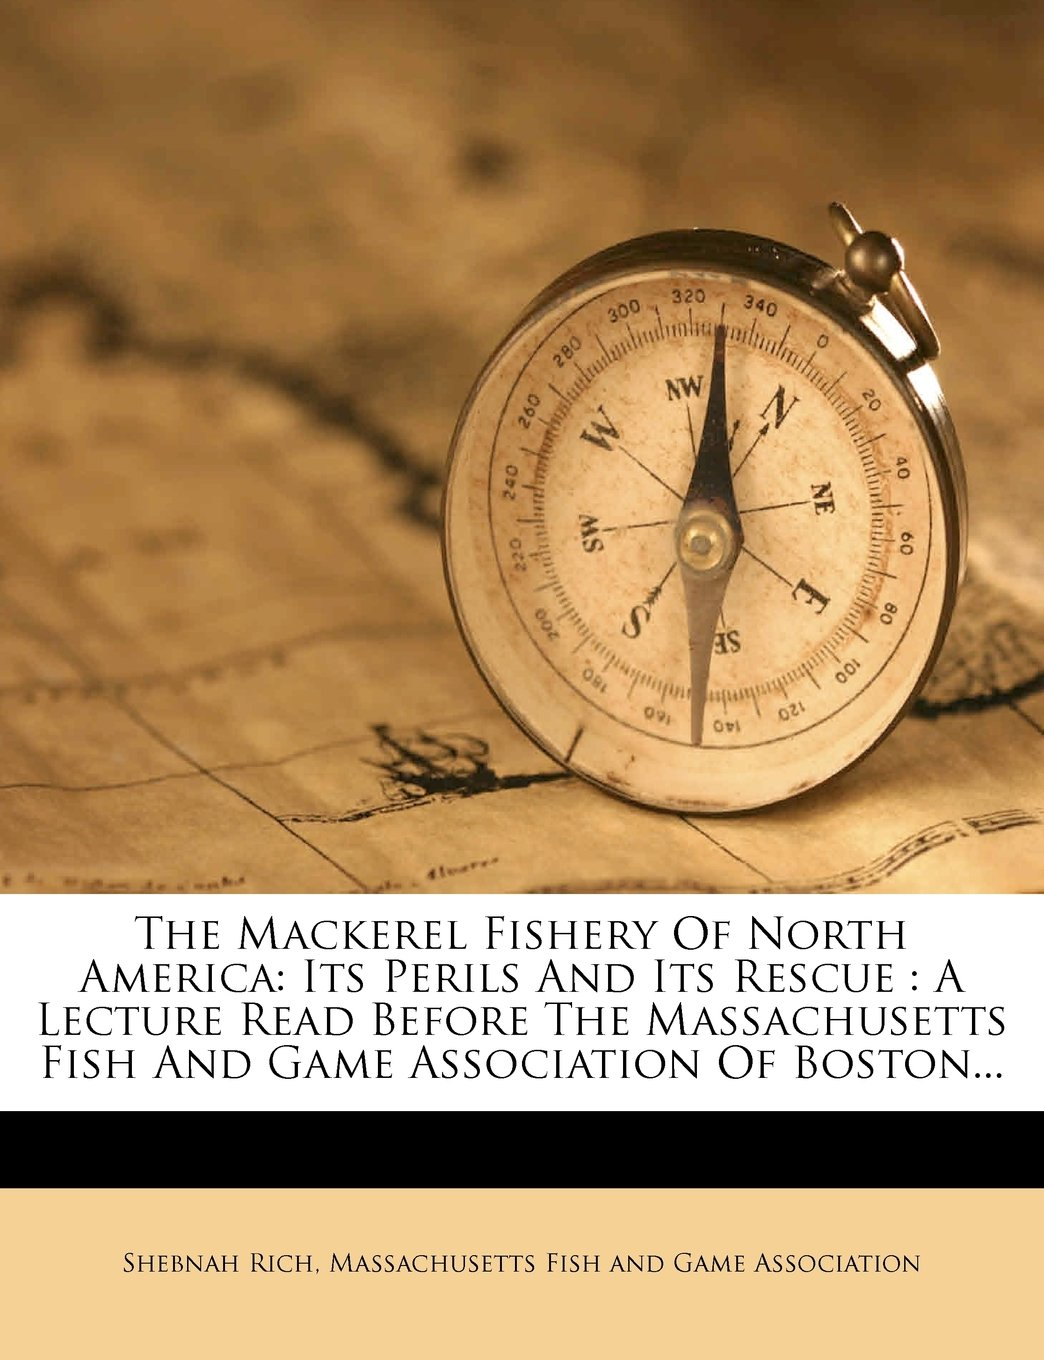 The Mackerel Fishery Of North America: Its Perils And Its Rescue : A Lecture Read Before The Massachusetts Fish And Game Association Of Boston... pdf epub